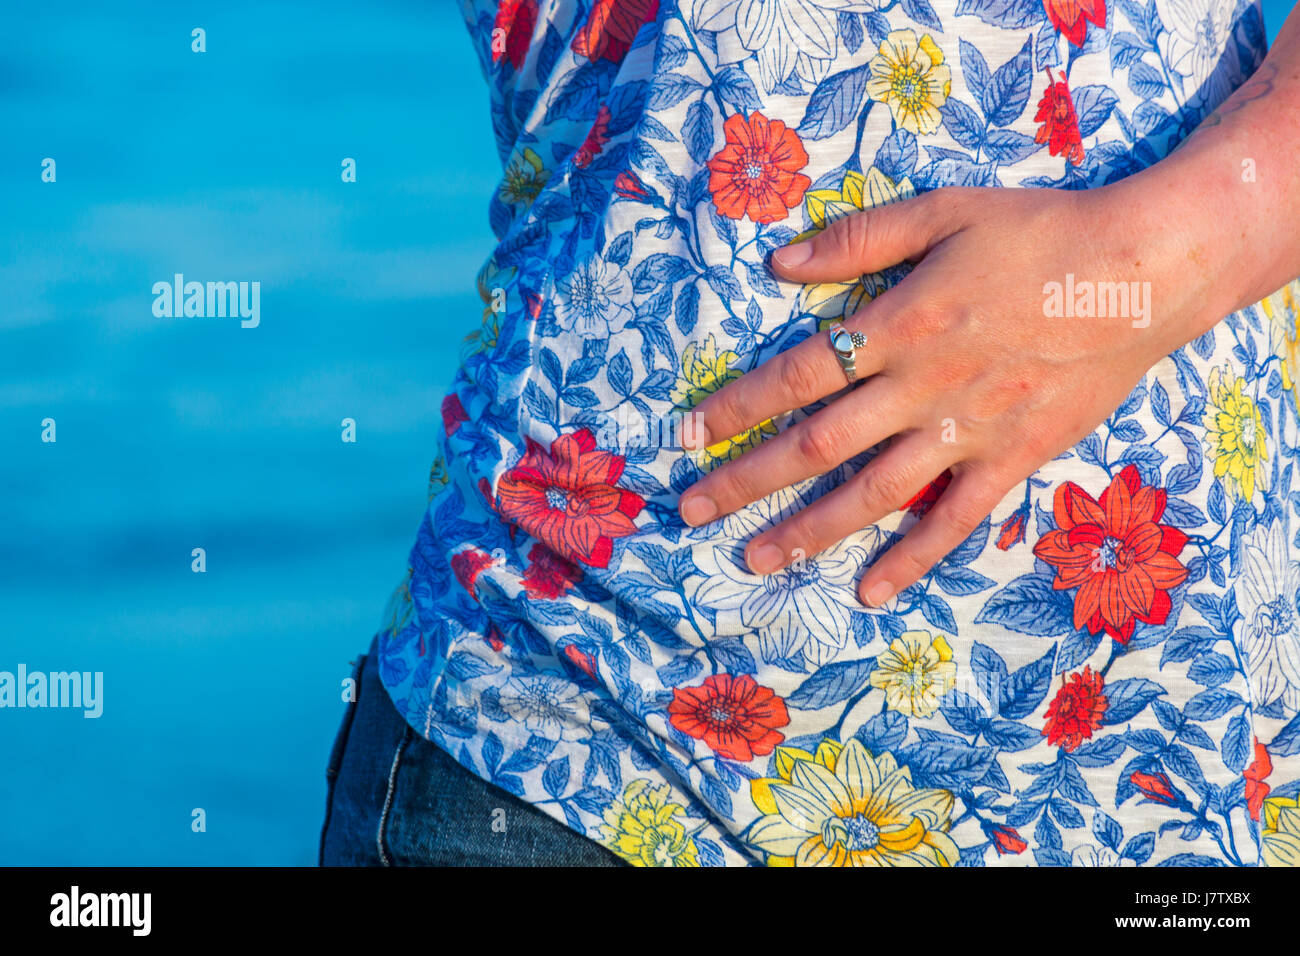 Young lady's hand laid flat on flowery t-shirt stomach tummy belly - concept of stomach ache, pain - Stock Image